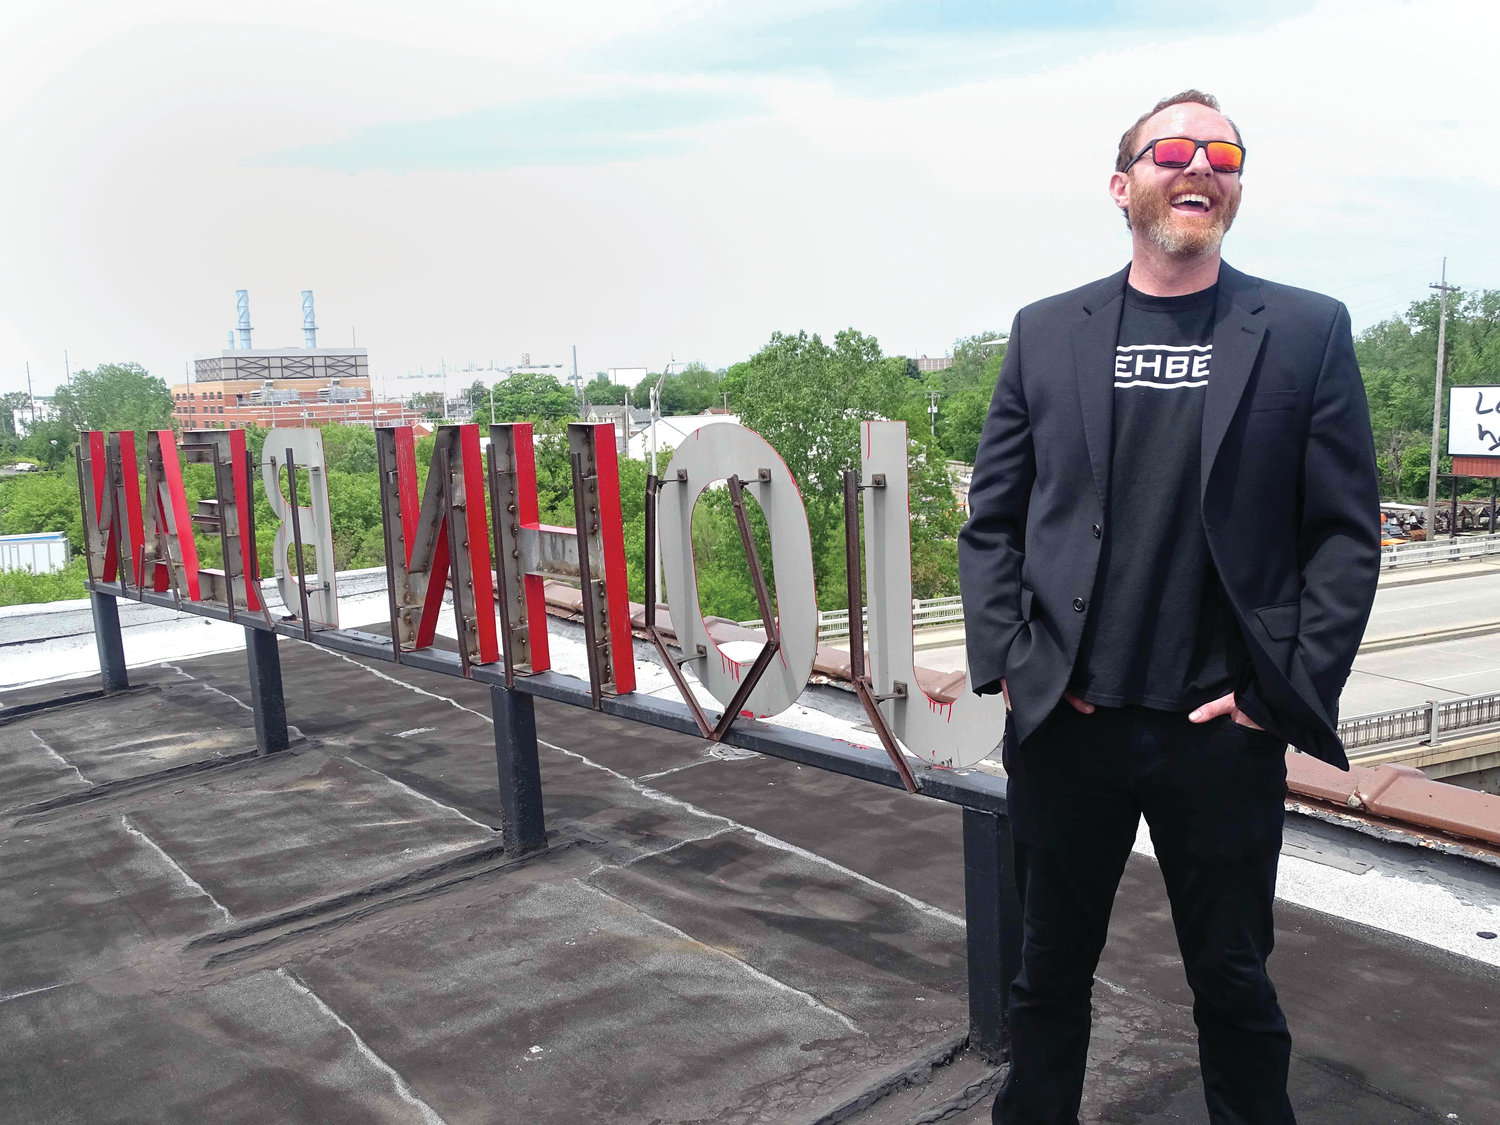 Michael Doherty, founder of Rehbel Industries, on the roof of the old John Bean Building, on South Cedar Street, which he is in the process of converting into one of the largest marijuana growing operations in the world.